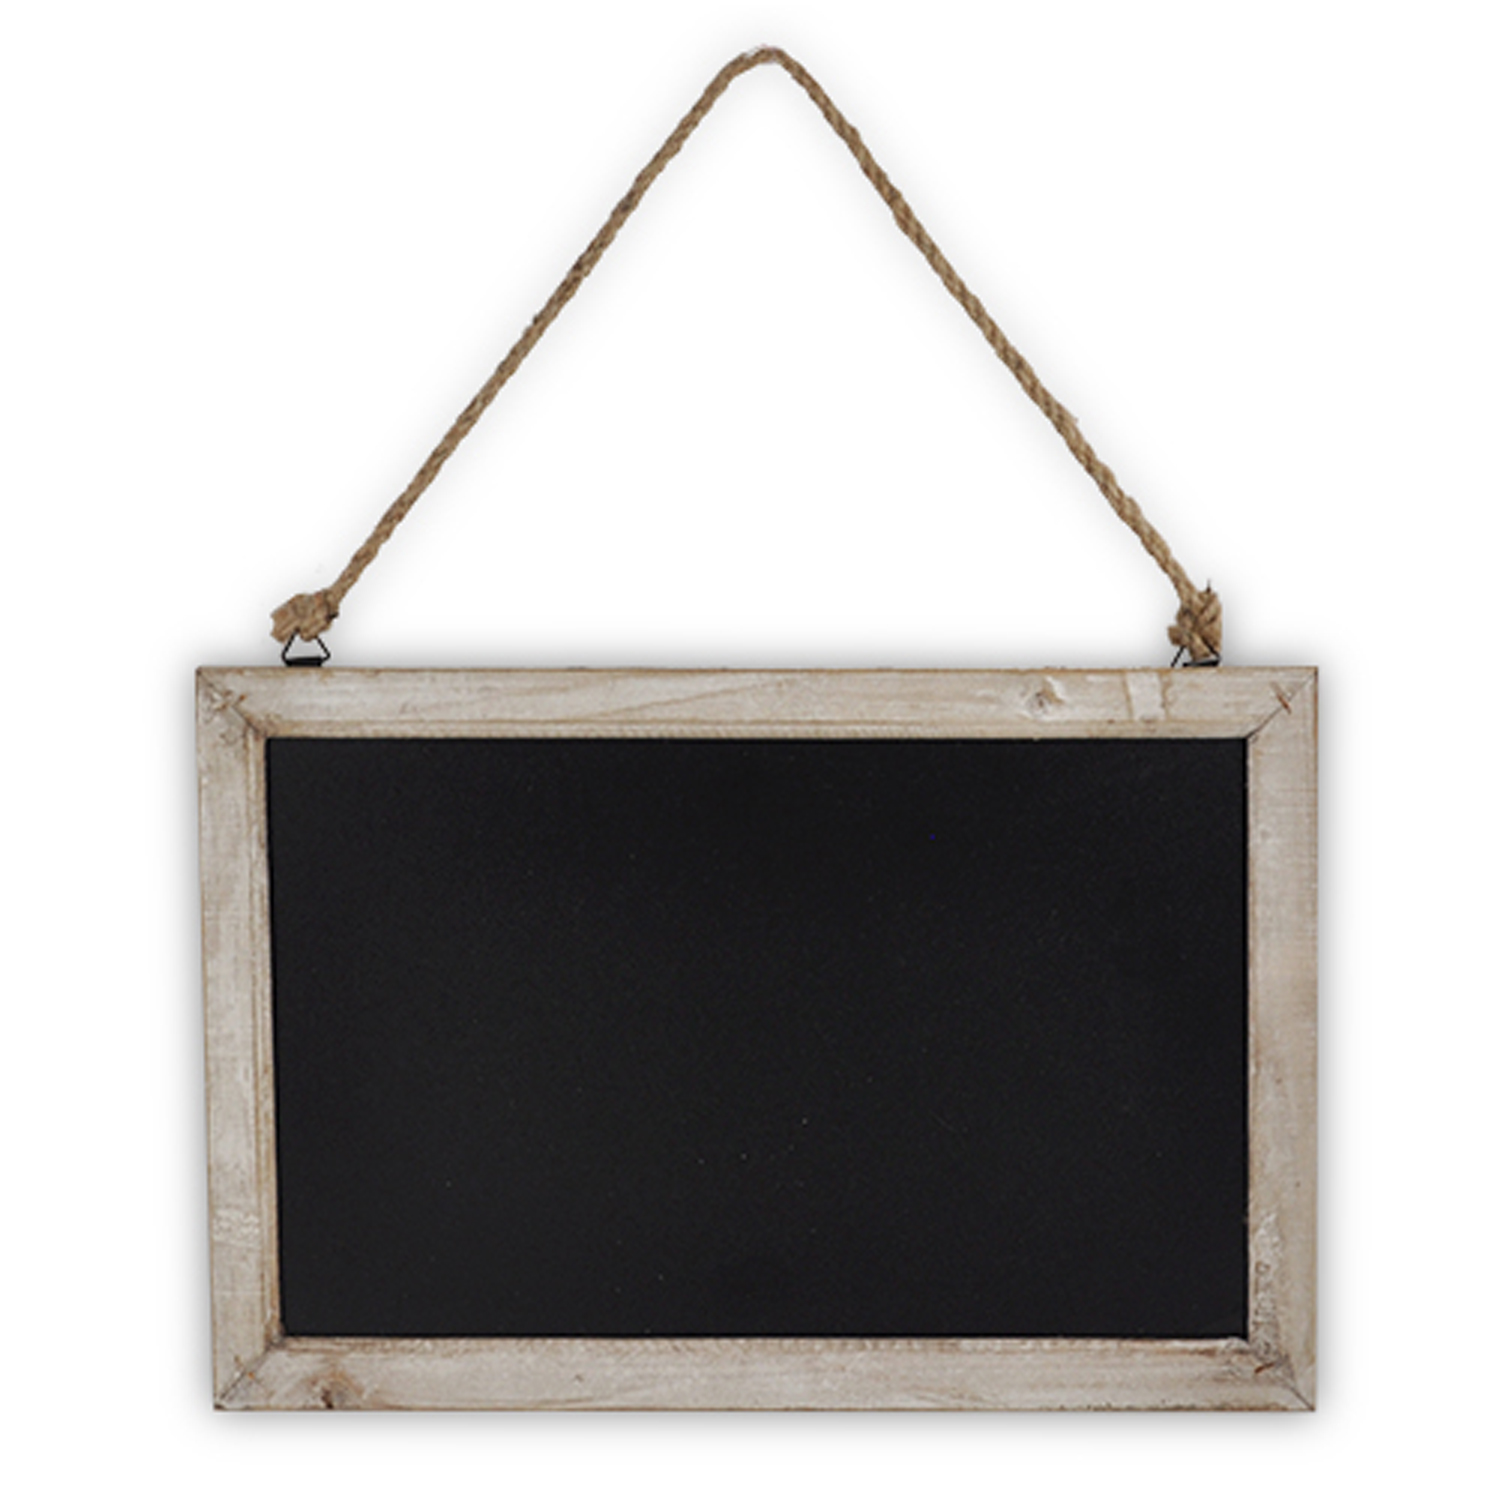 Hanging Store Display Chalkboard Sign 10in